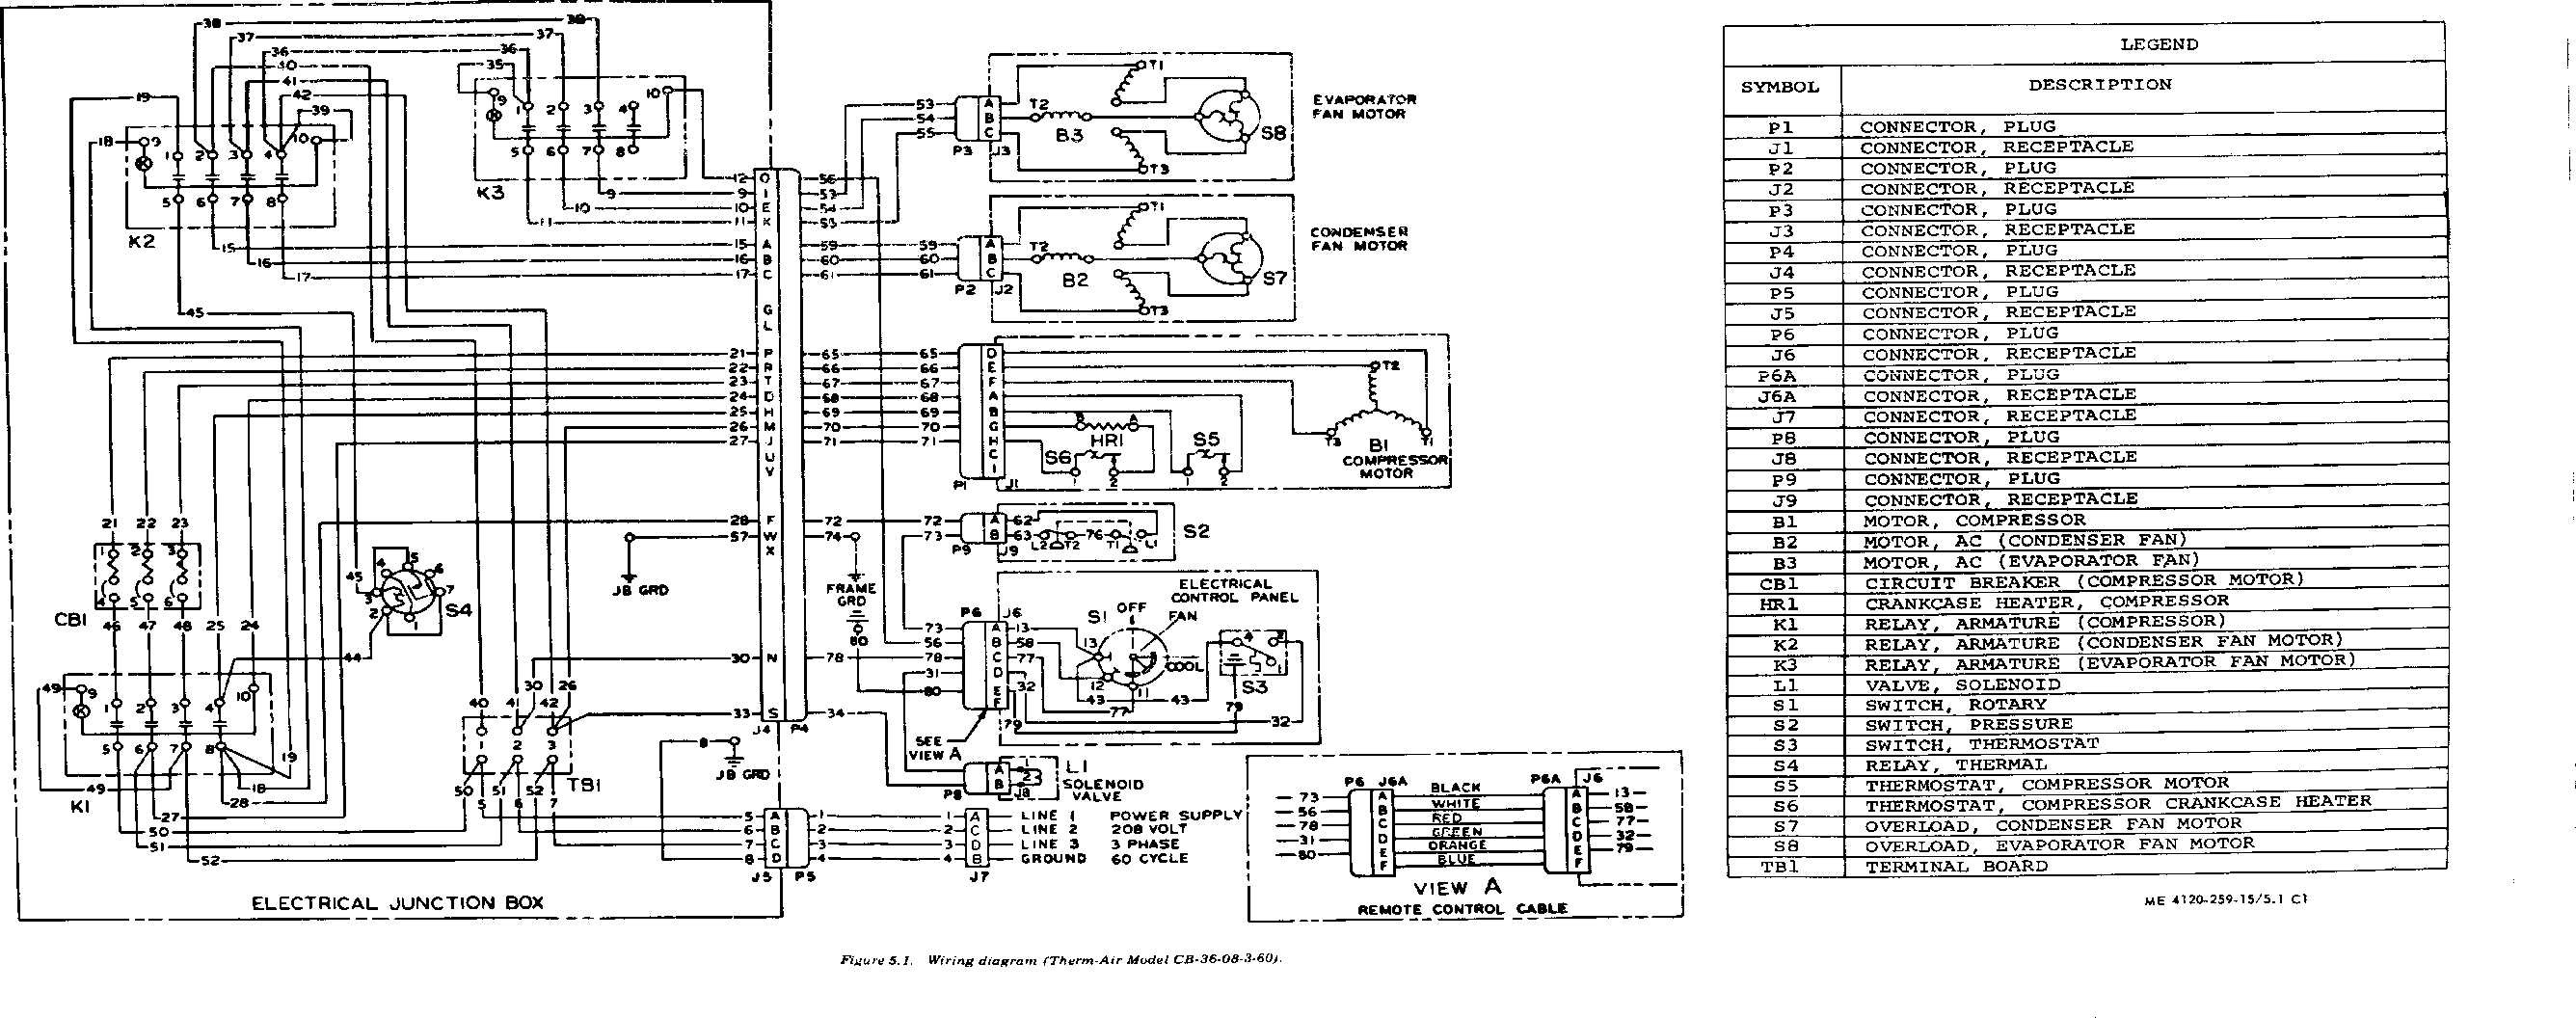 Payne Package Unit Wiring Diagram | Free Wiring Diagram